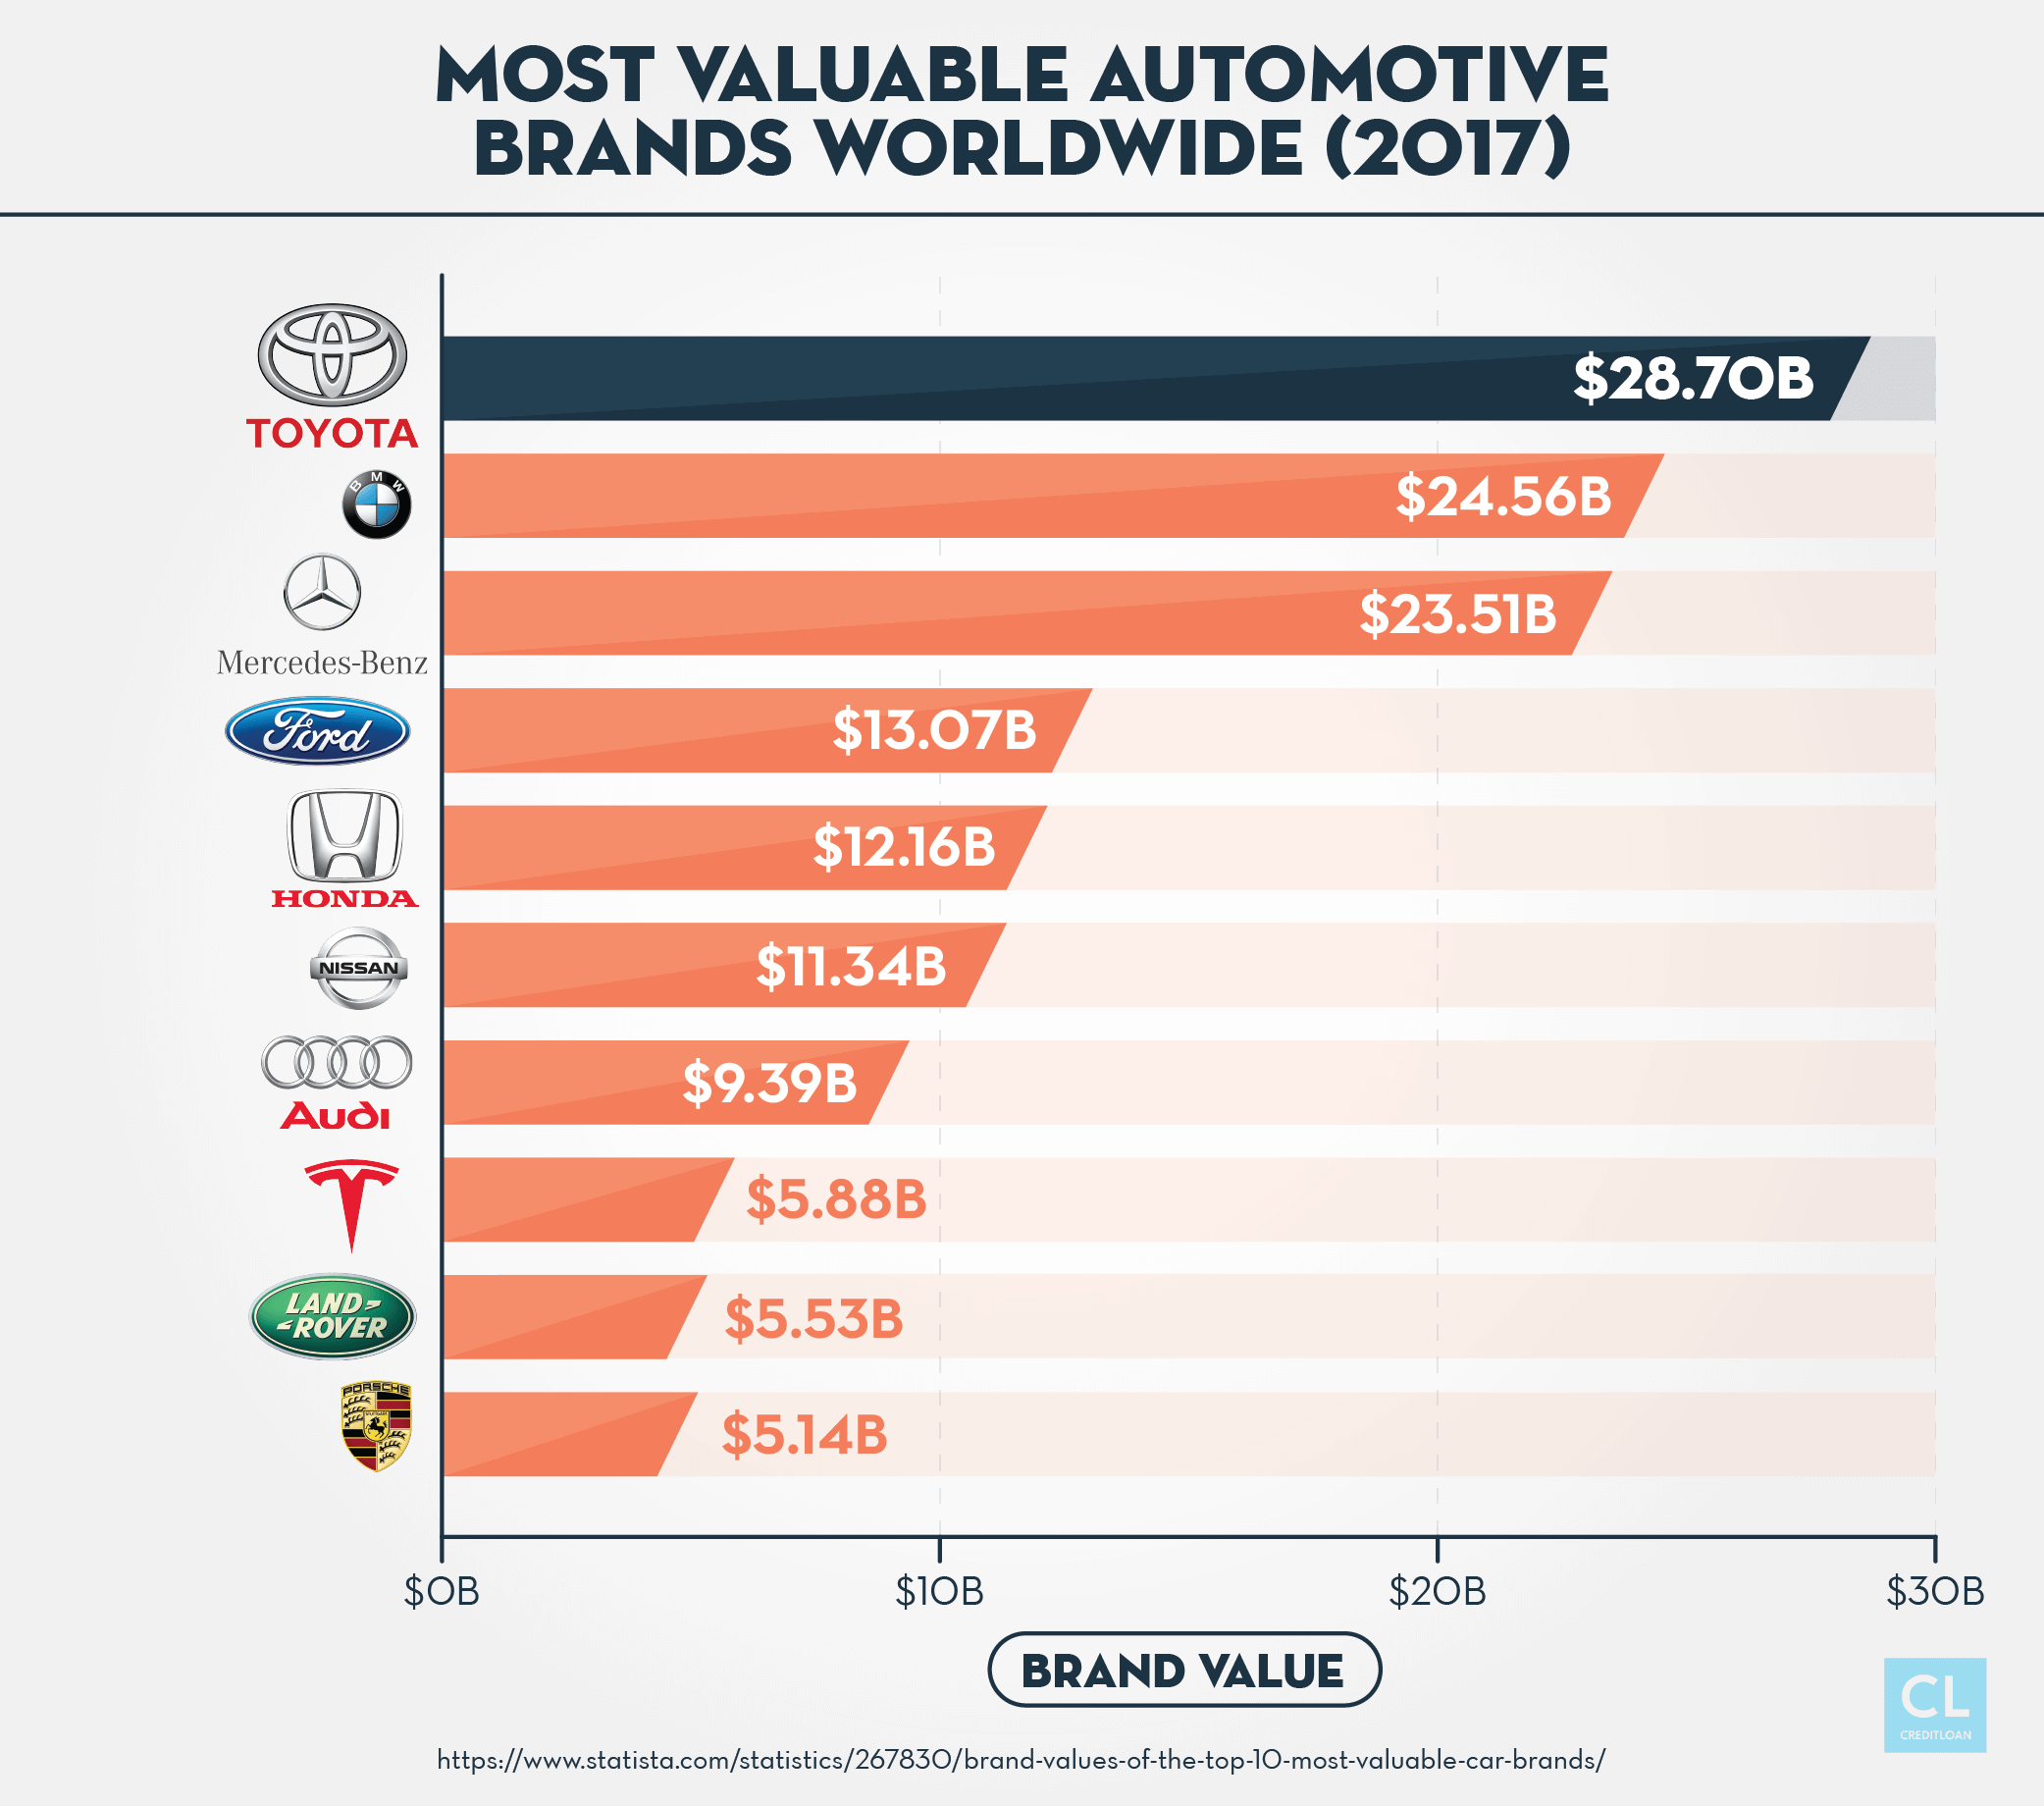 2017 Most Valuable Automotive Brands Worldwide